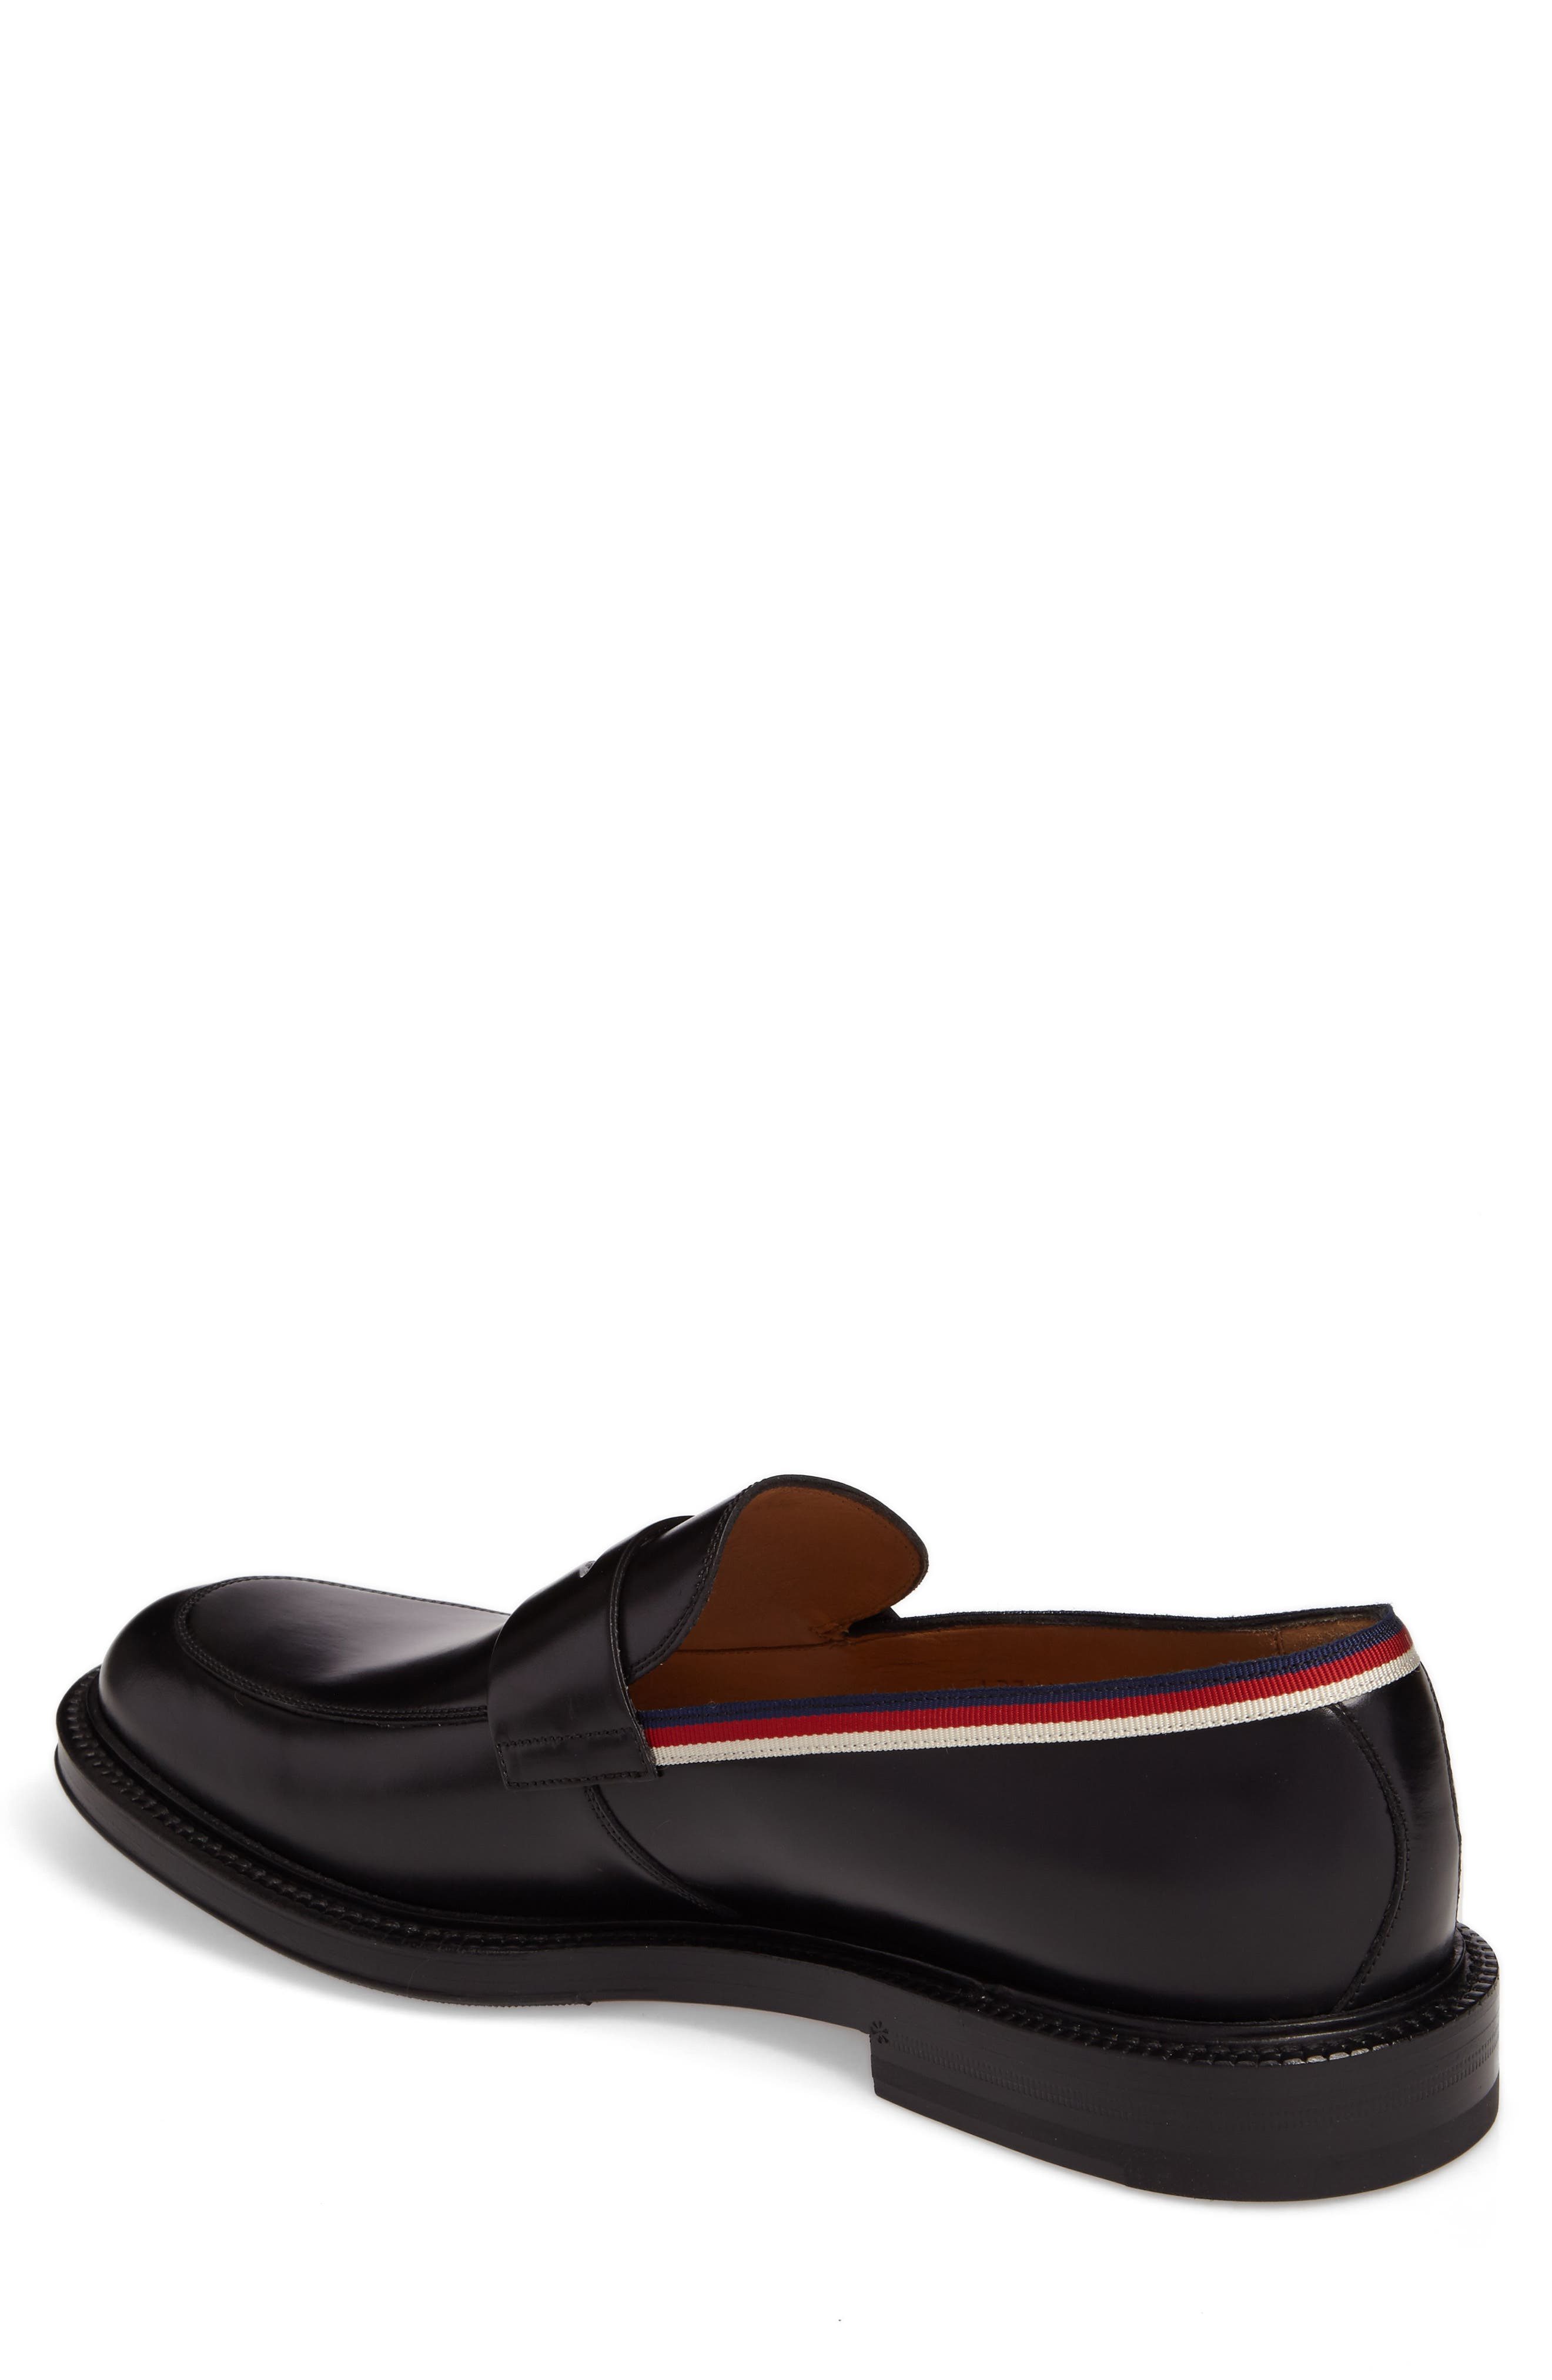 GUCCI,                             Beyond Penny Loafer,                             Alternate thumbnail 2, color,                             007